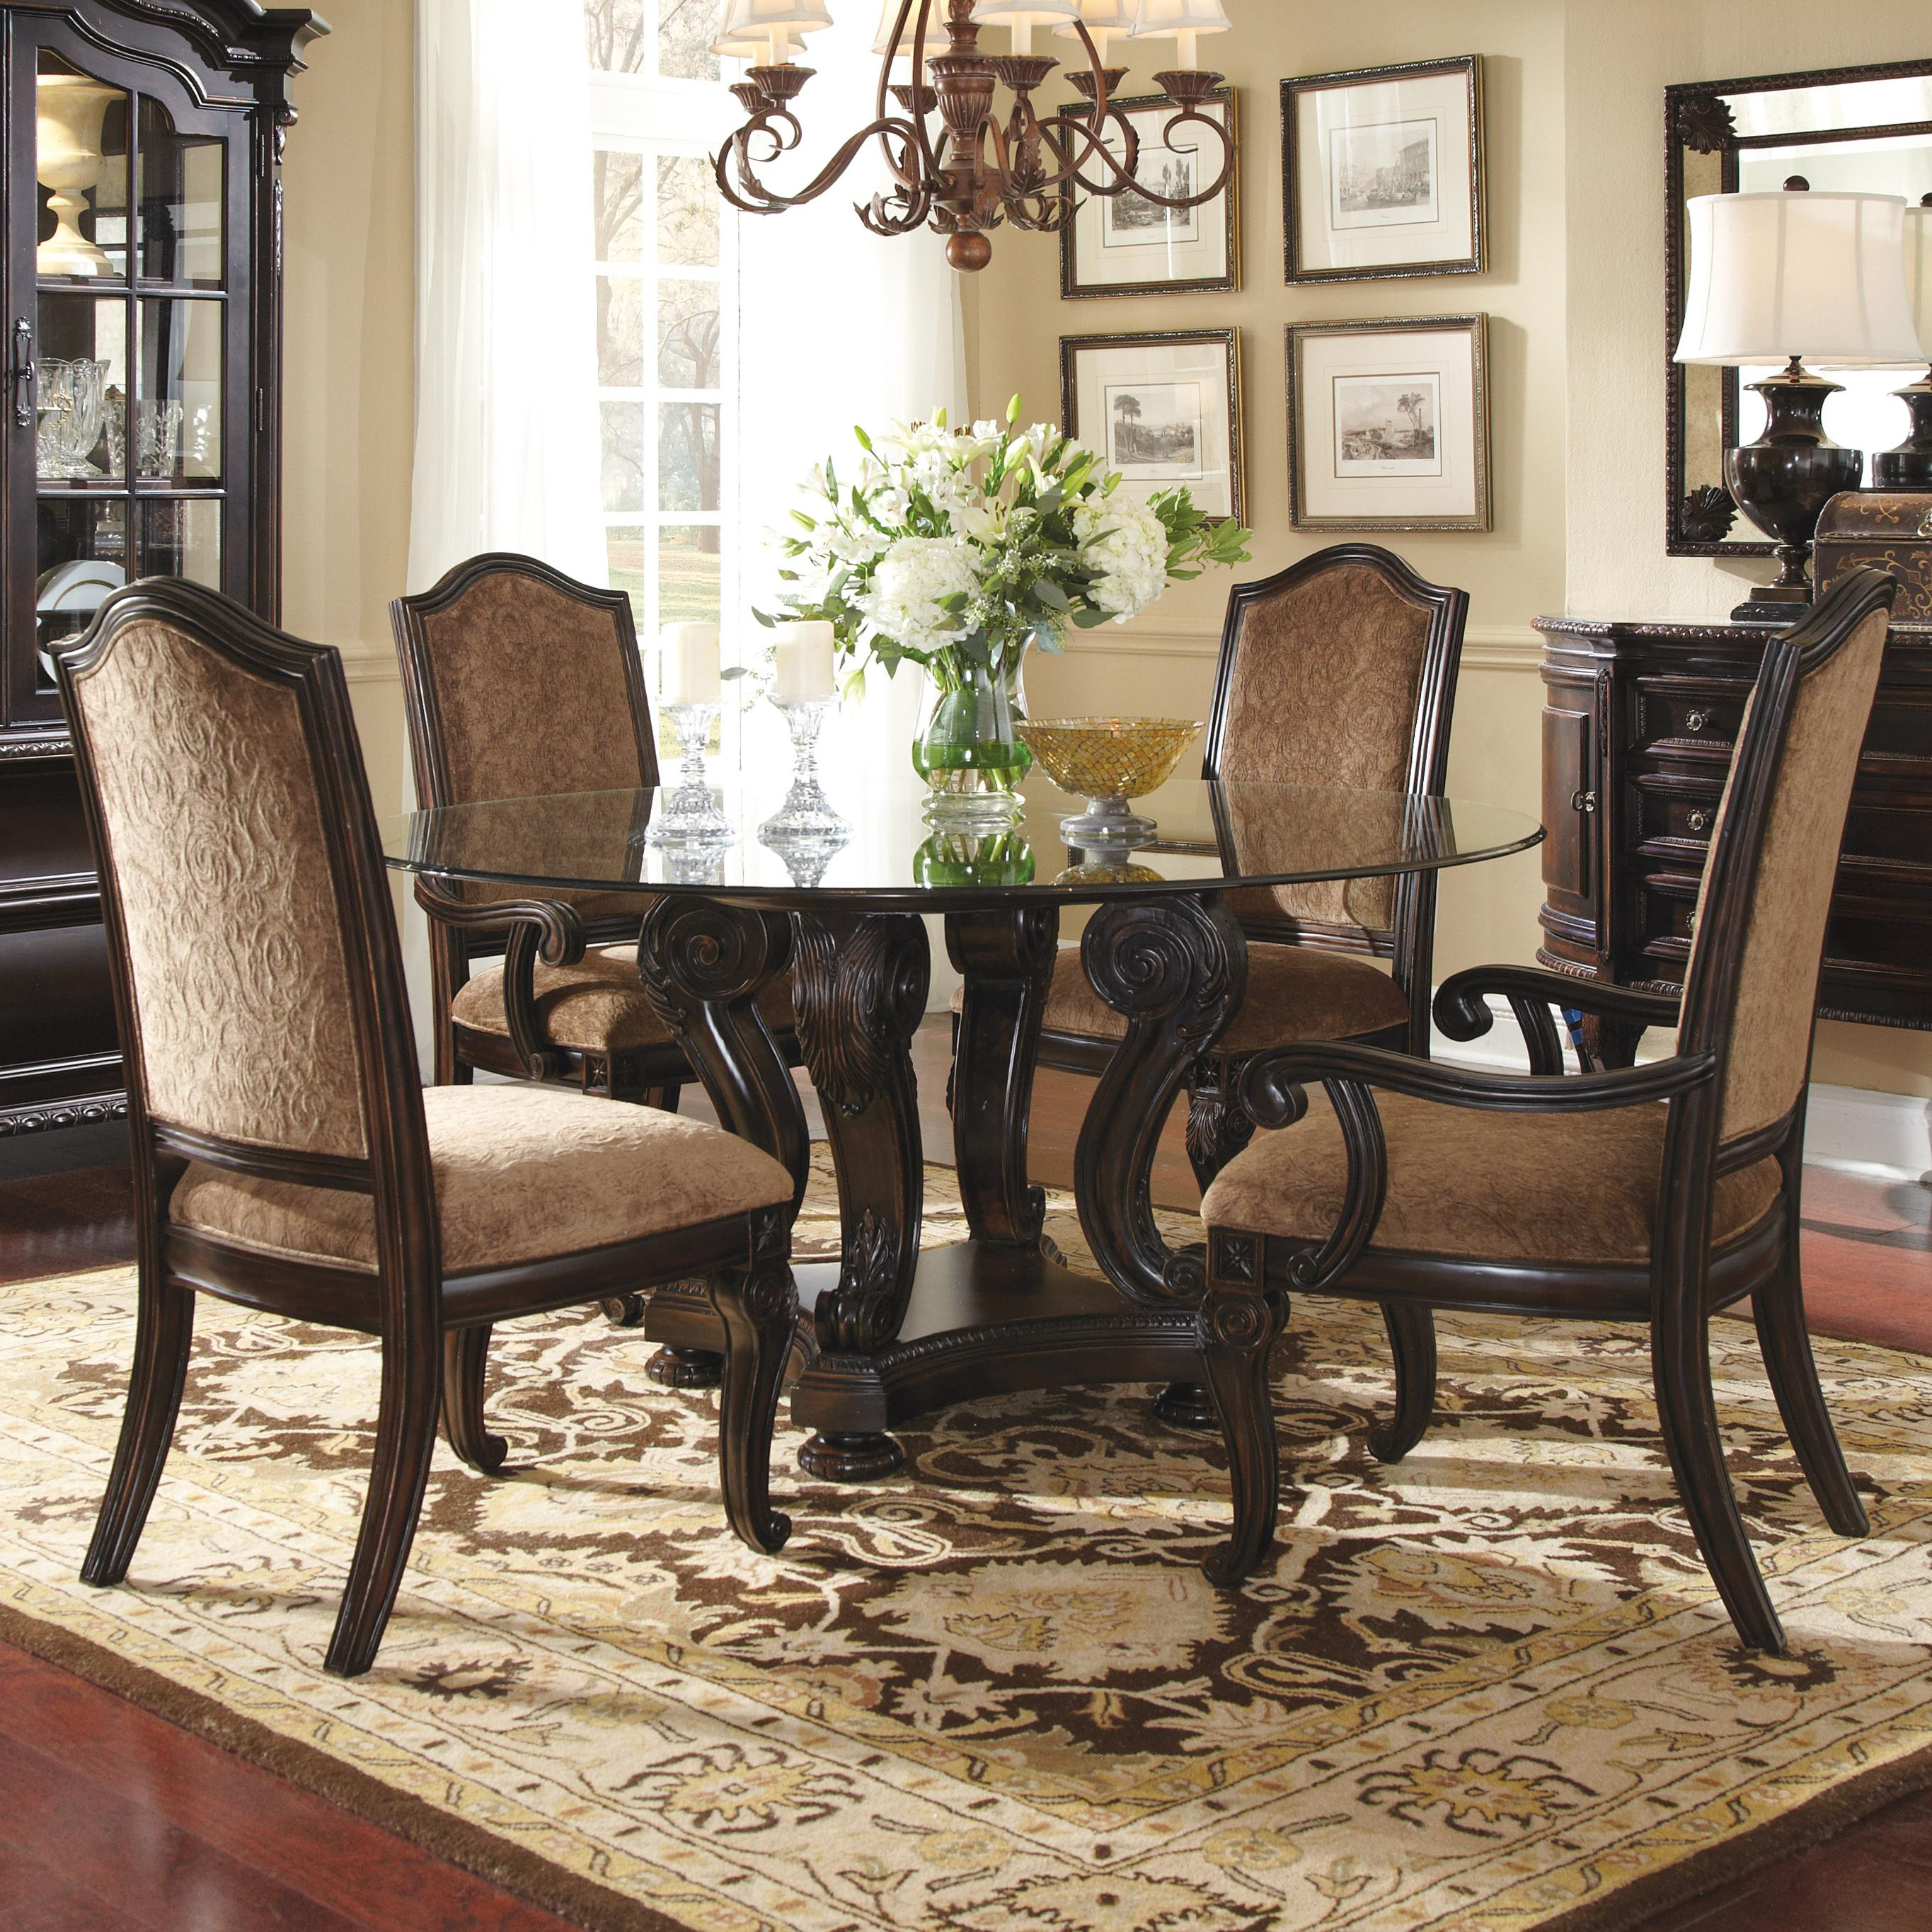 Round Table 4 Chairs Rug Flower Lamp Buffet